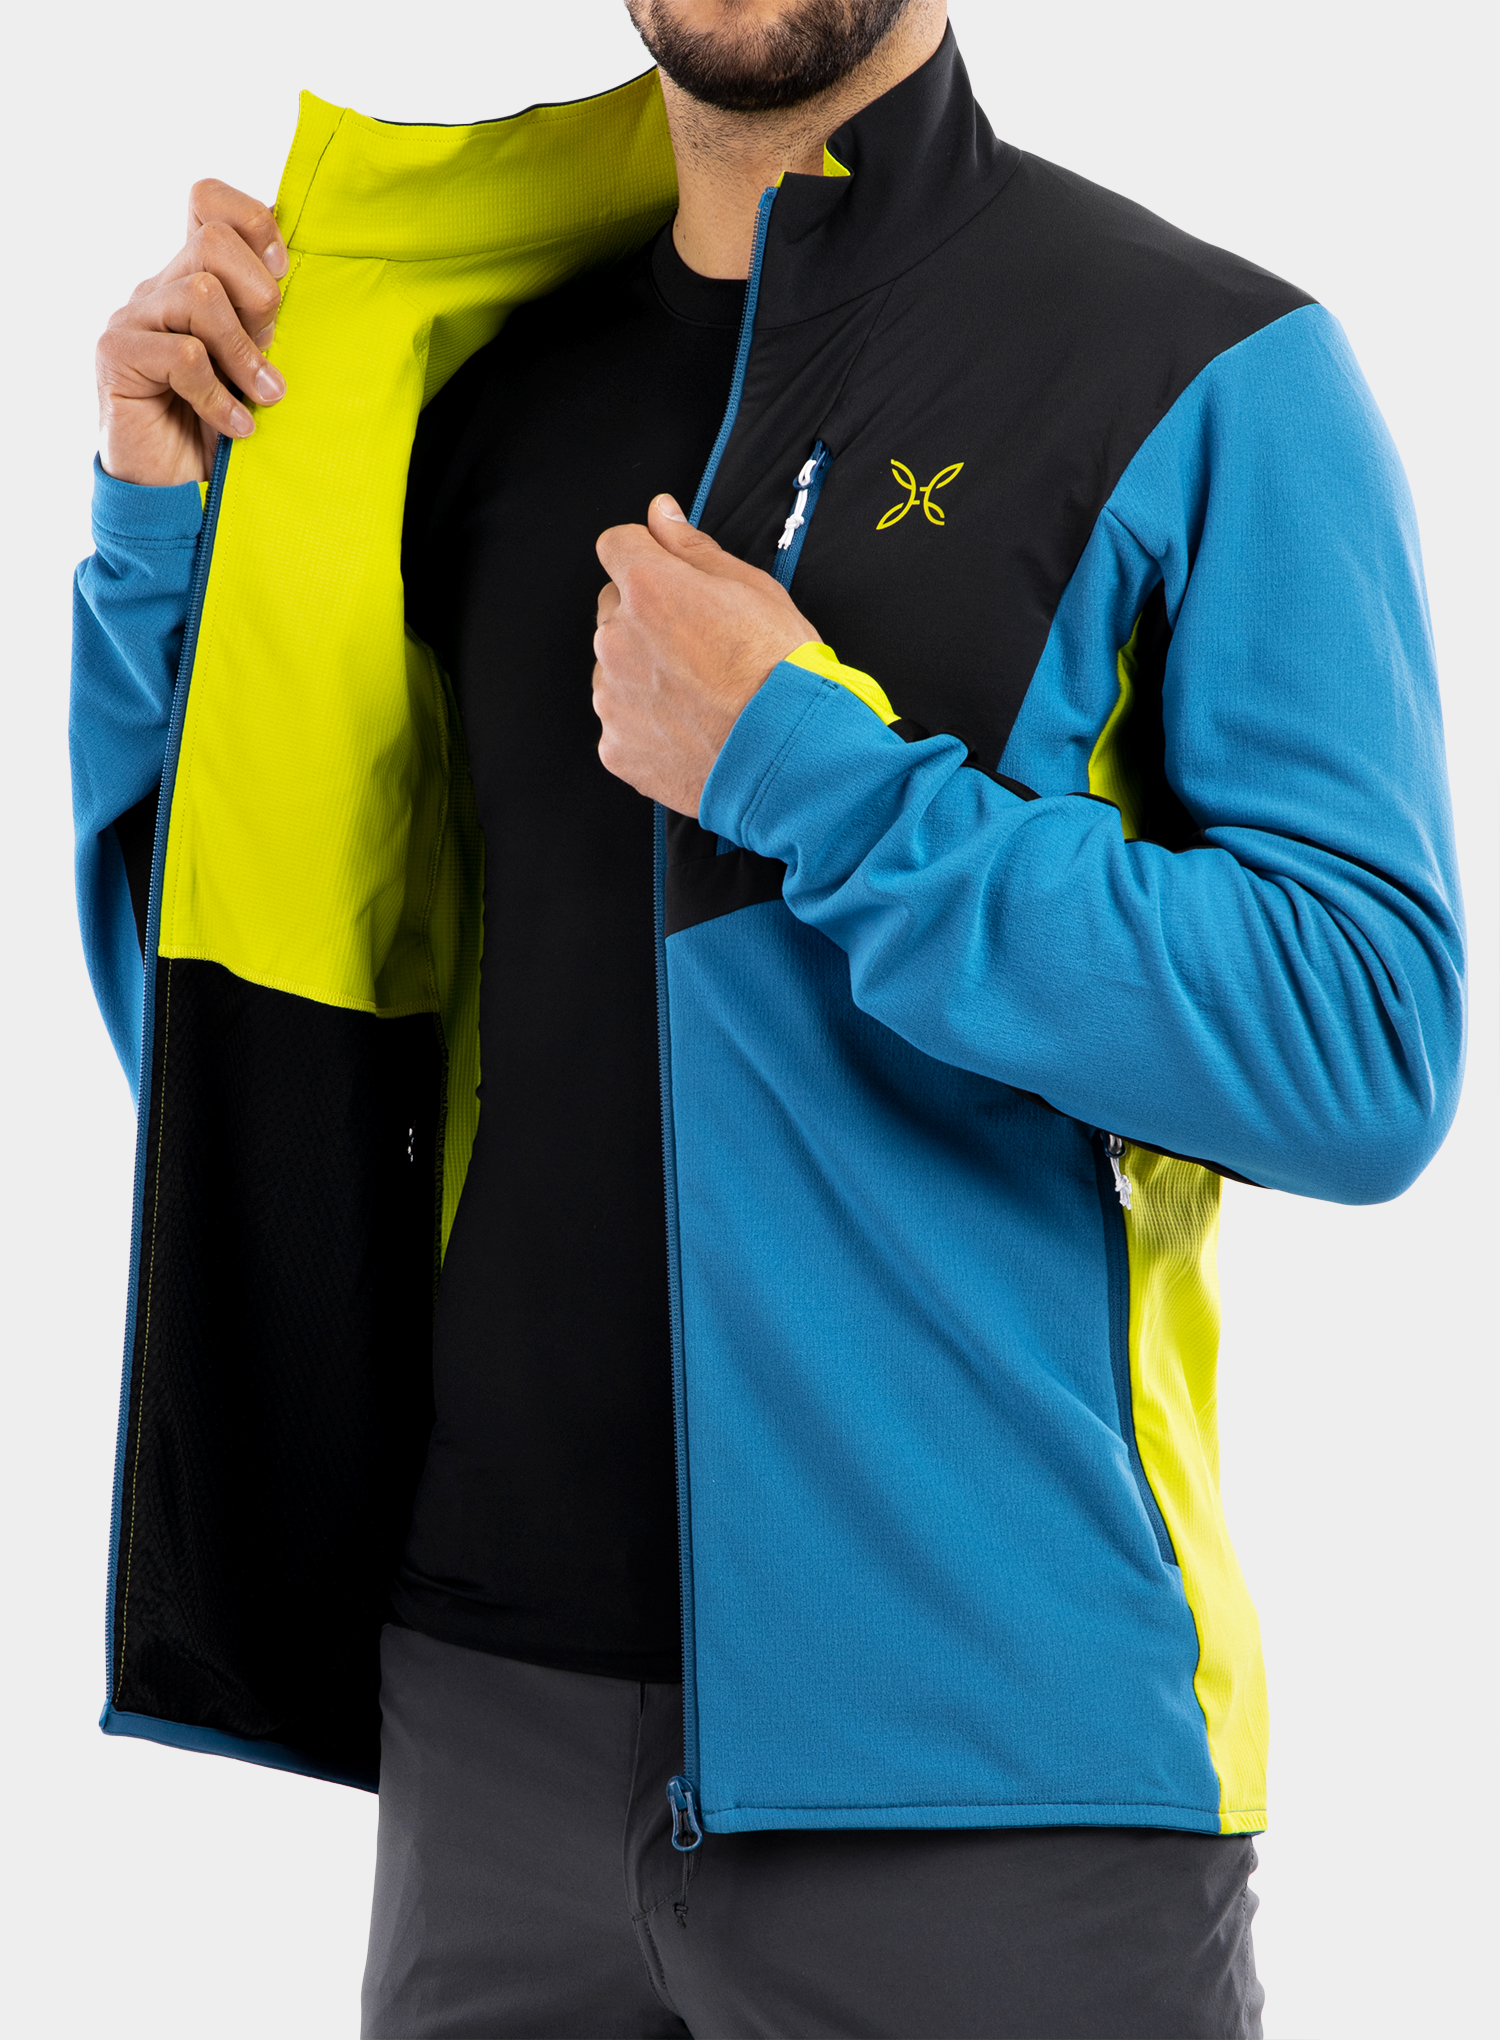 Bluza Montura Stretch Pro 2.0 Jacket - teal blue/lime green - zdjęcie nr. 12